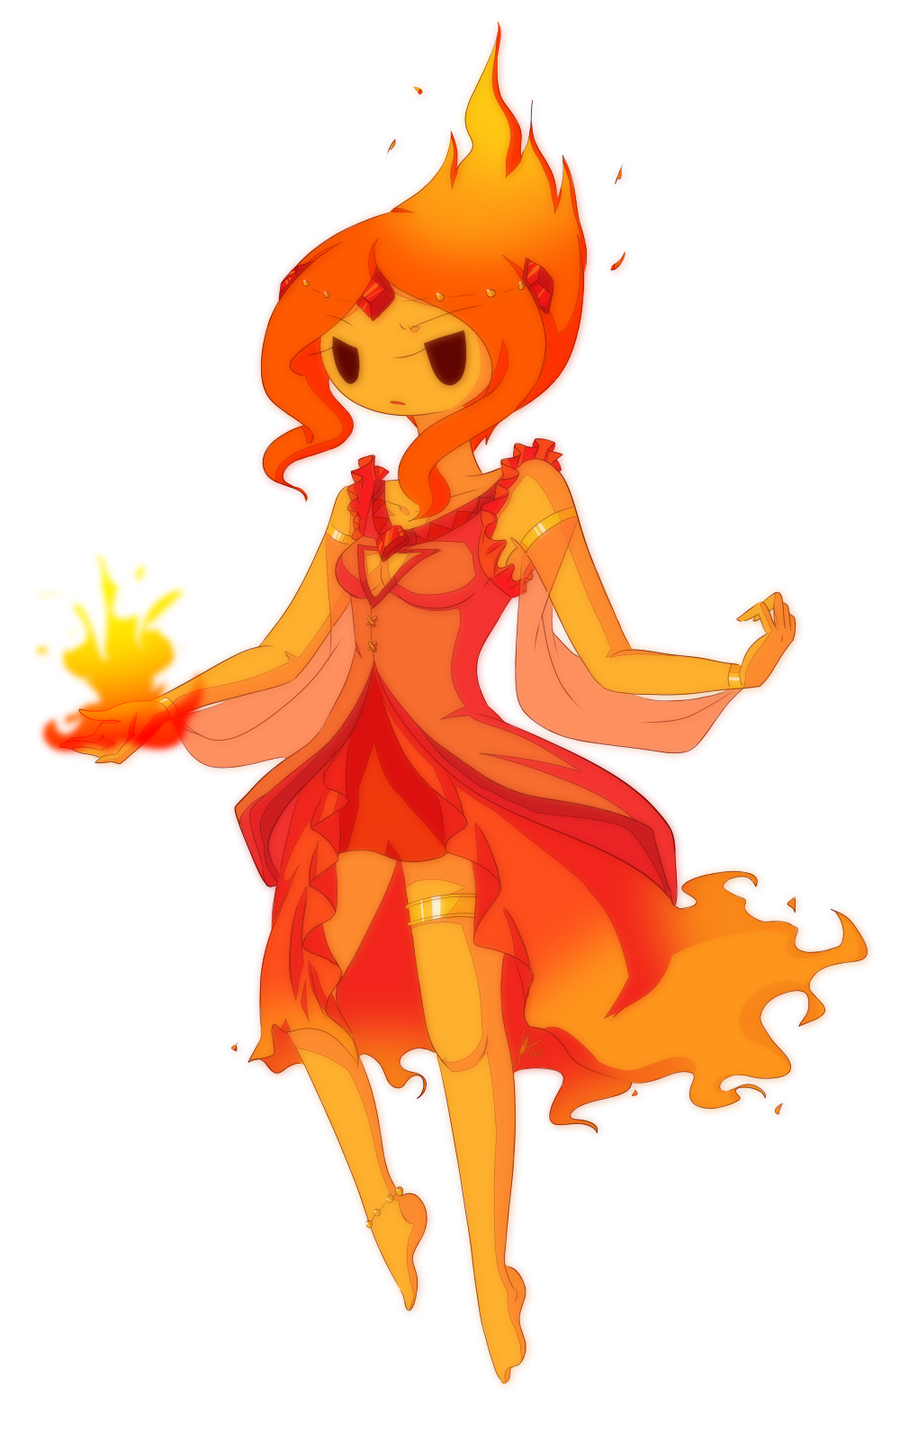 Flame Princess by piketta on DeviantArt